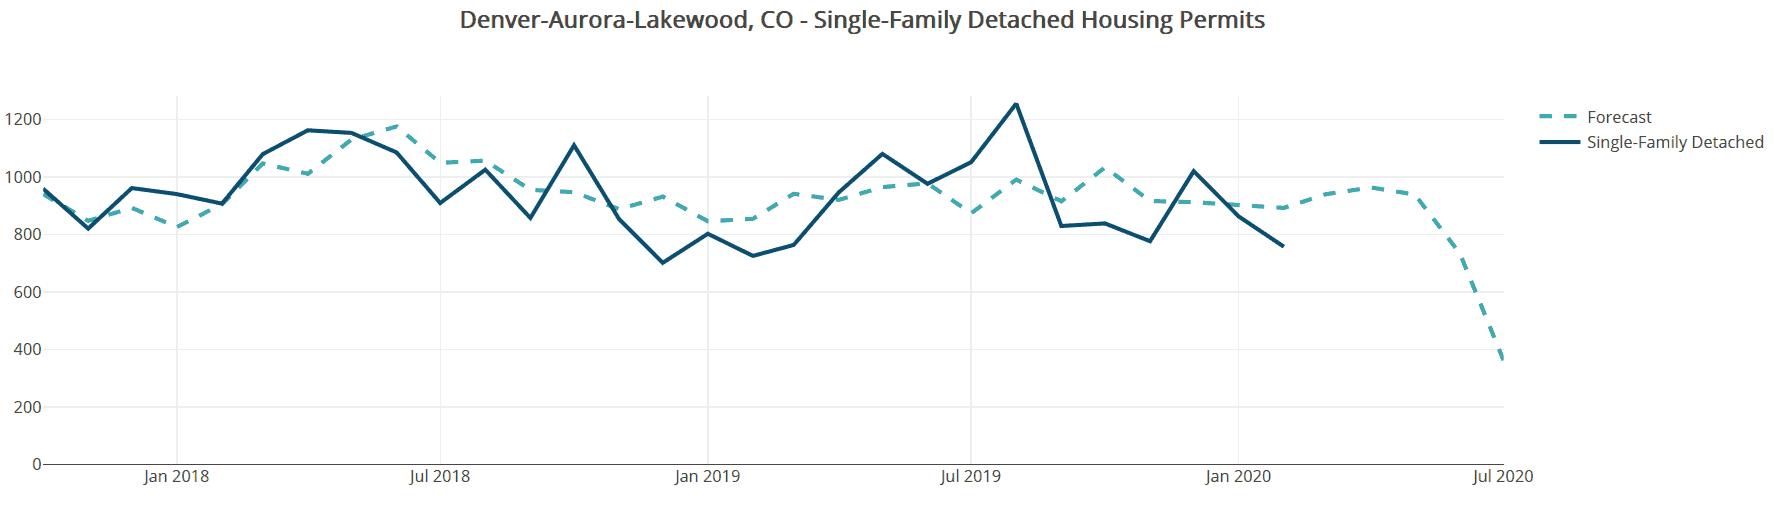 Worst case scenario for Colorado's COVID-19 Housing Market - large increase in unemployment, and big declines in lending activity and market confidence